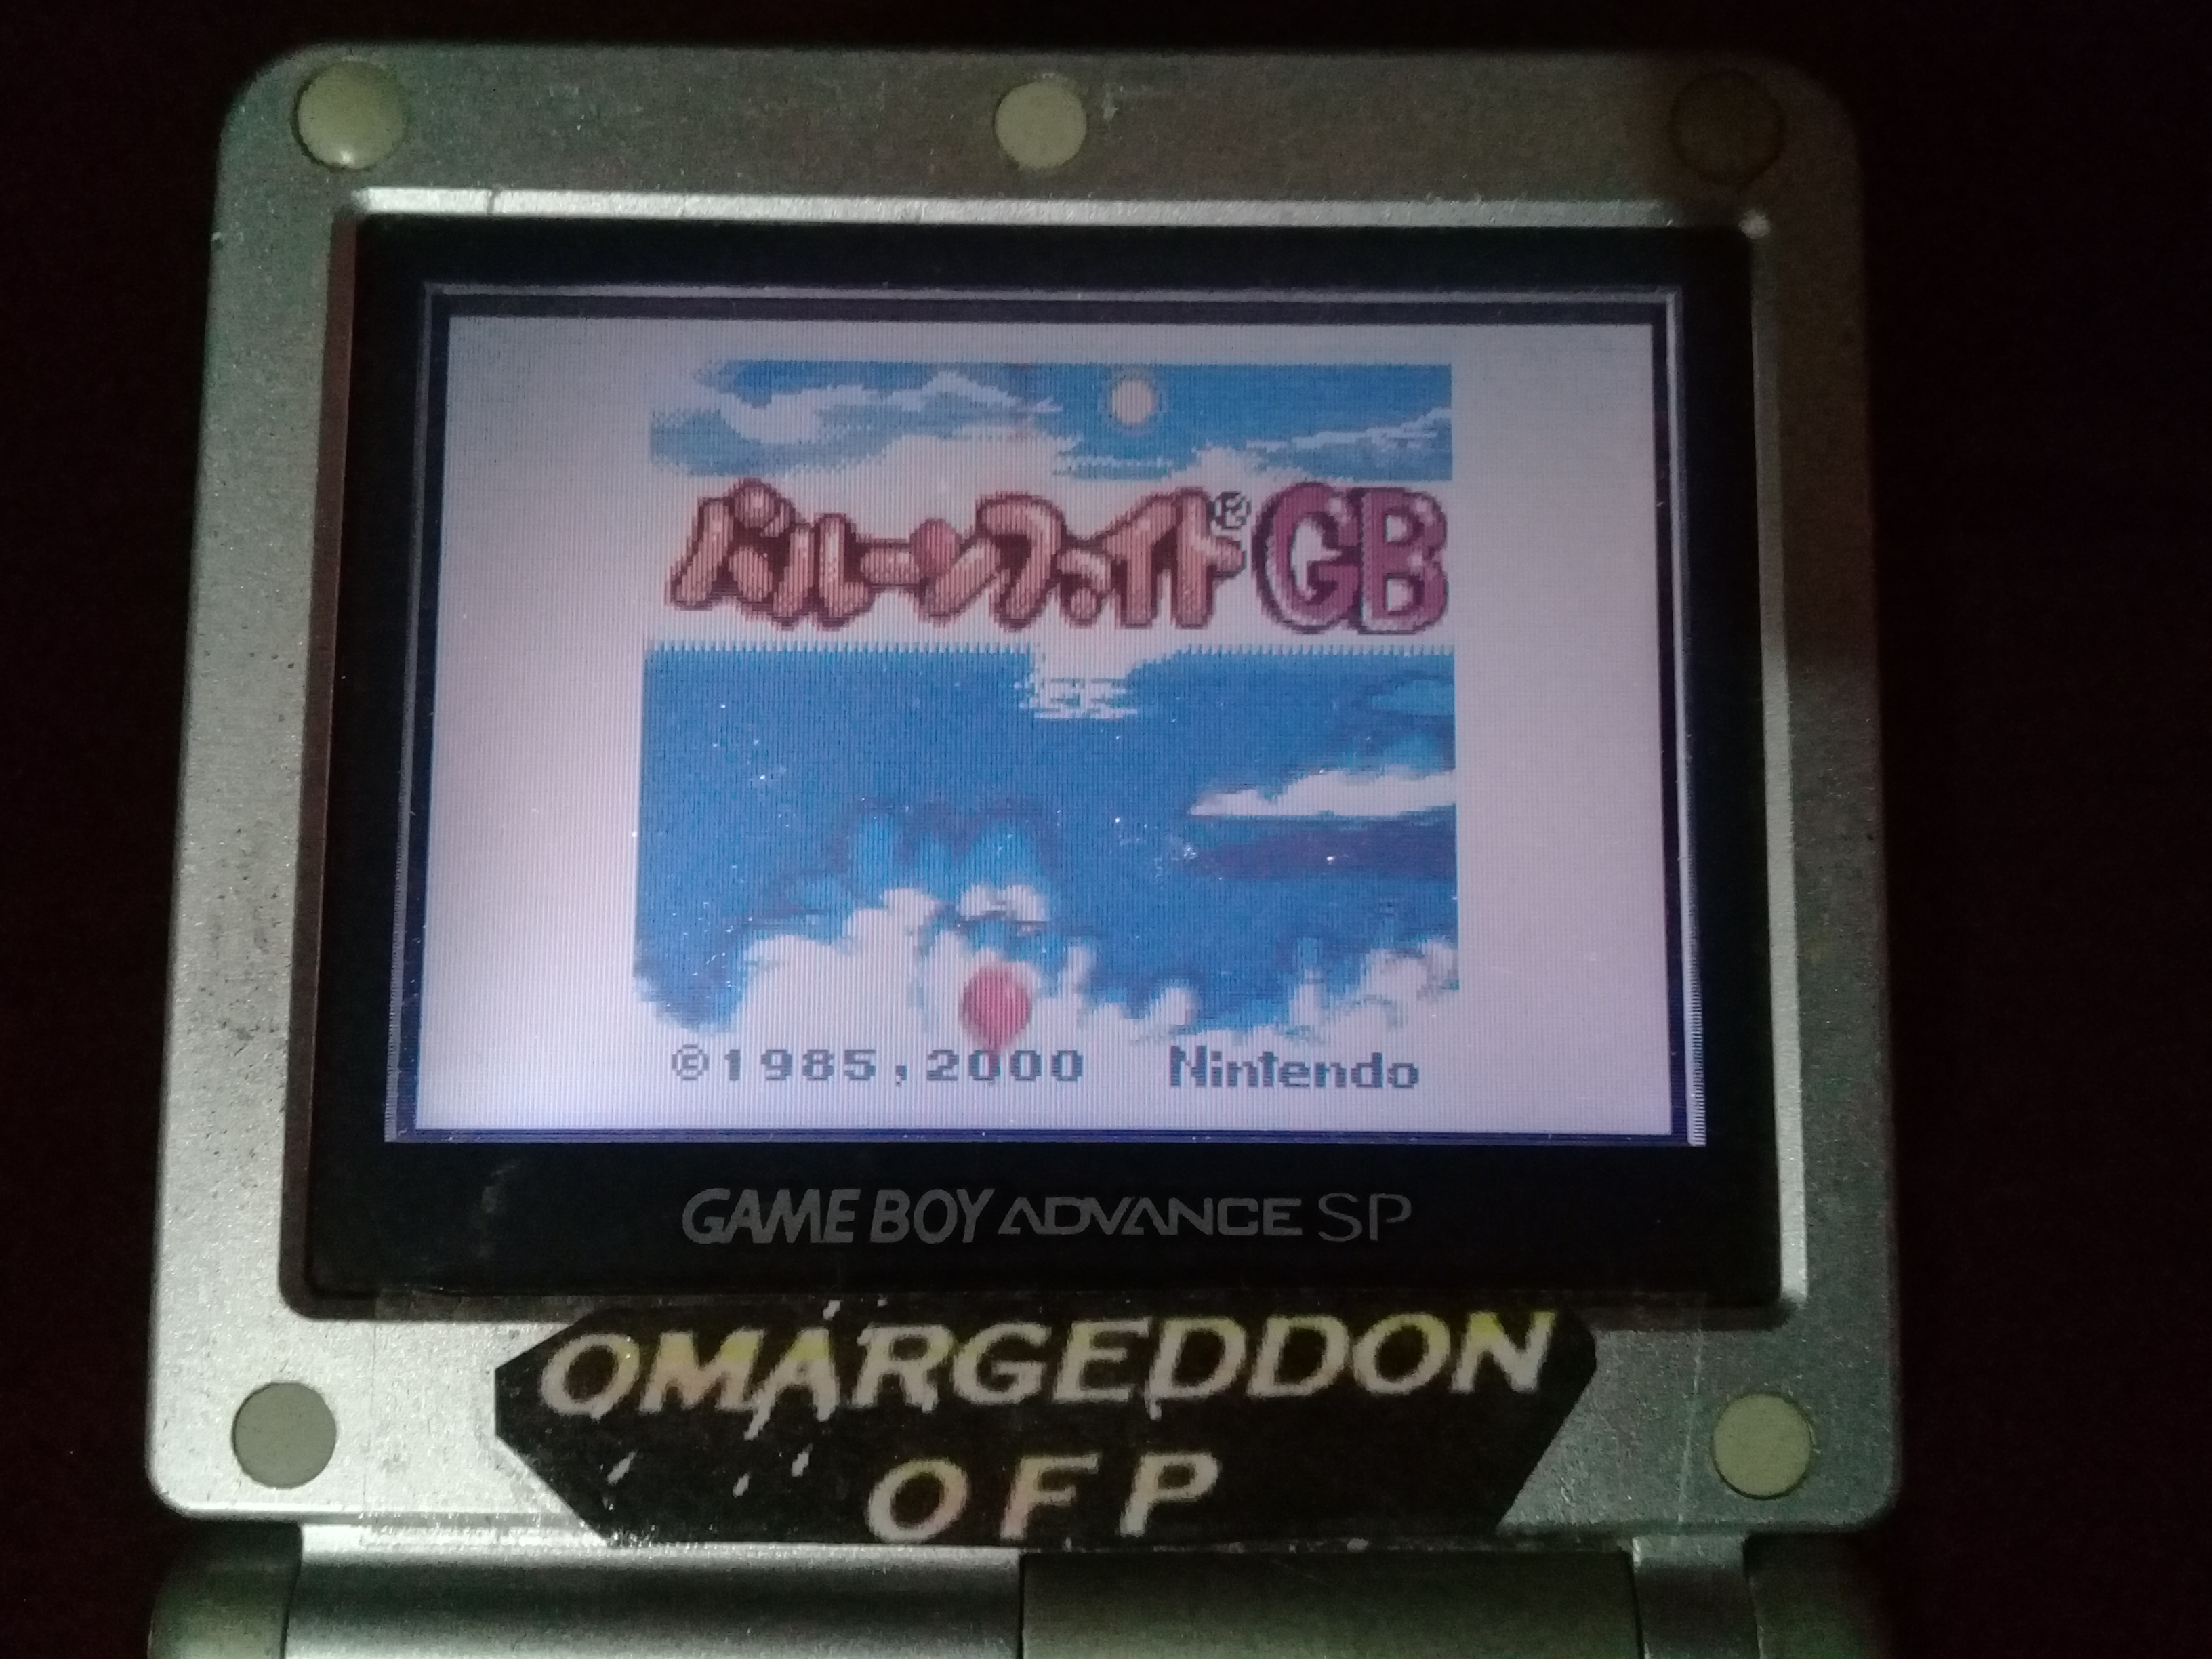 omargeddon: Balloon Fight GB (Game Boy Color) 87,200 points on 2019-08-25 13:16:22